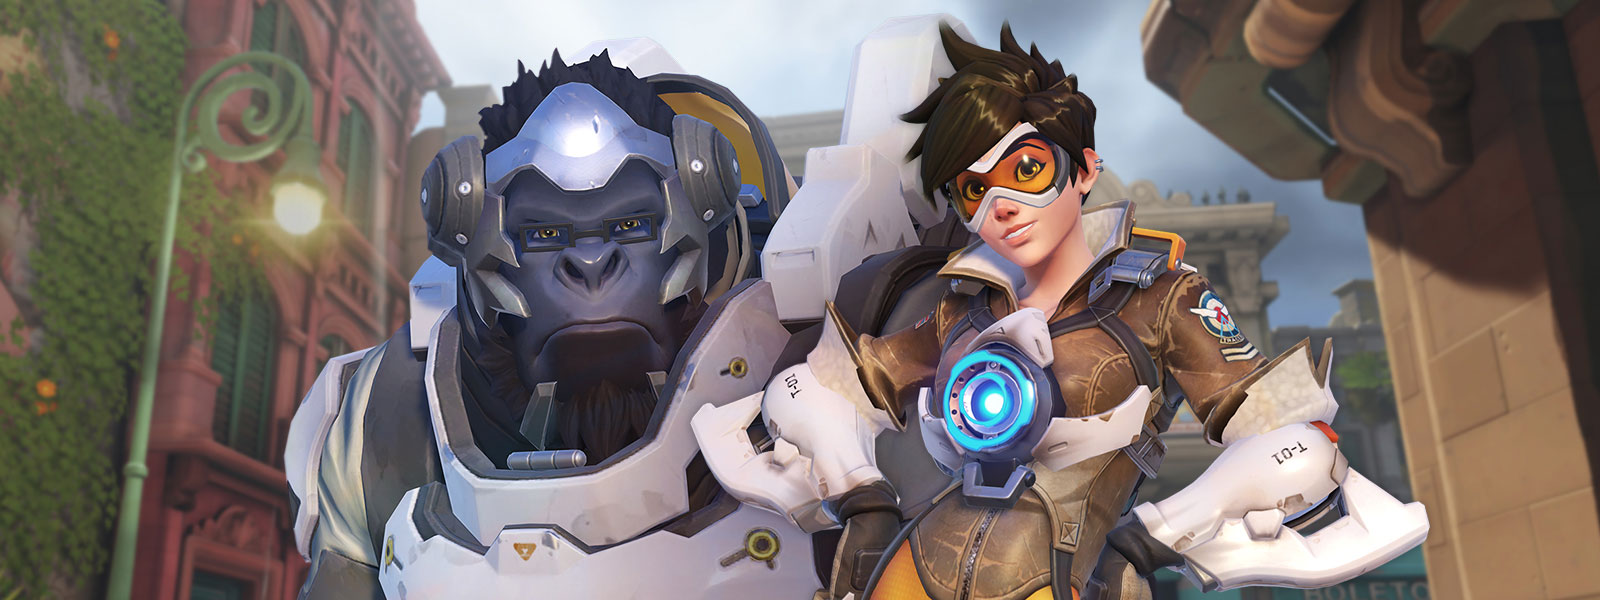 Overwatch heroes Winston and Tracer posing